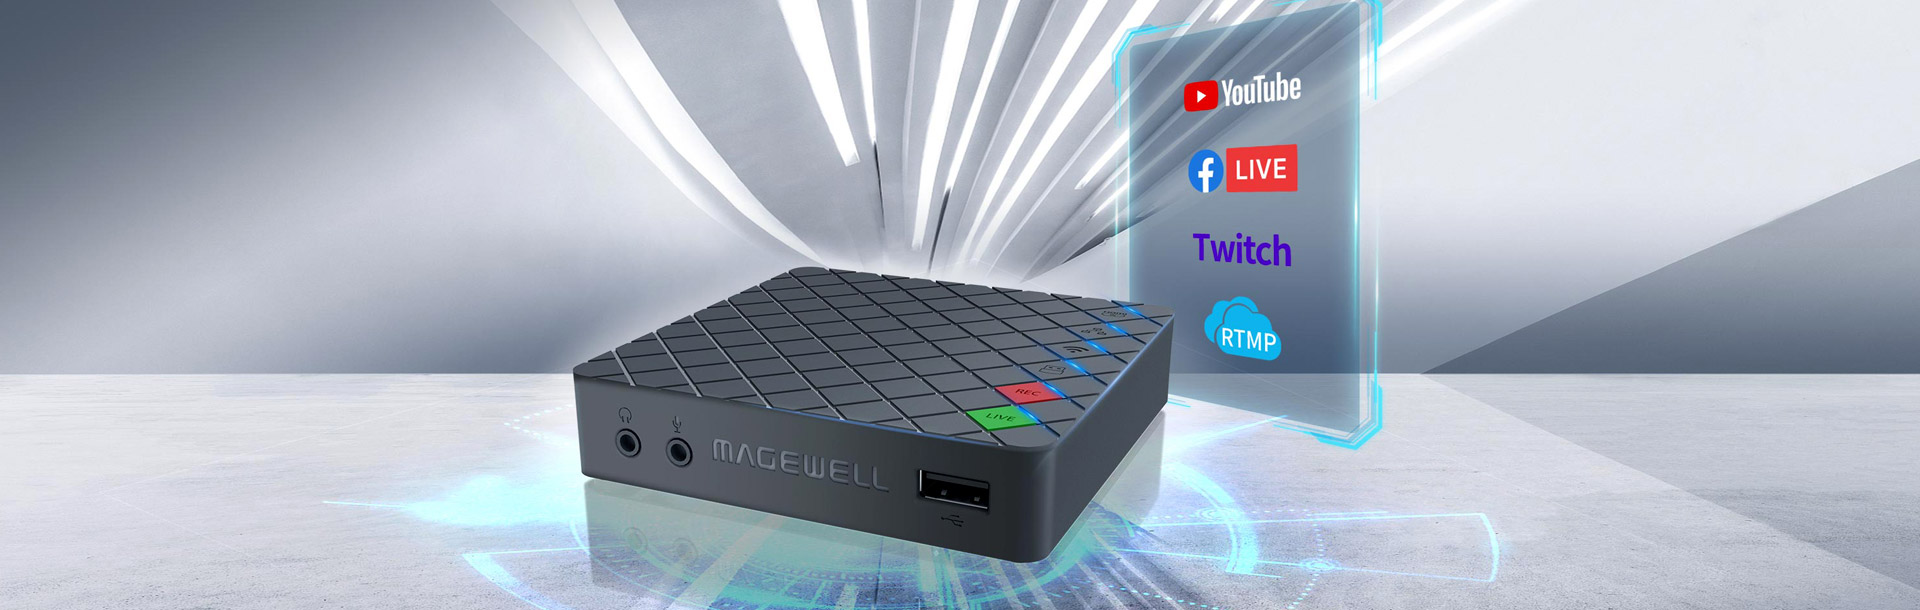 Madgewell Audio and Video capture